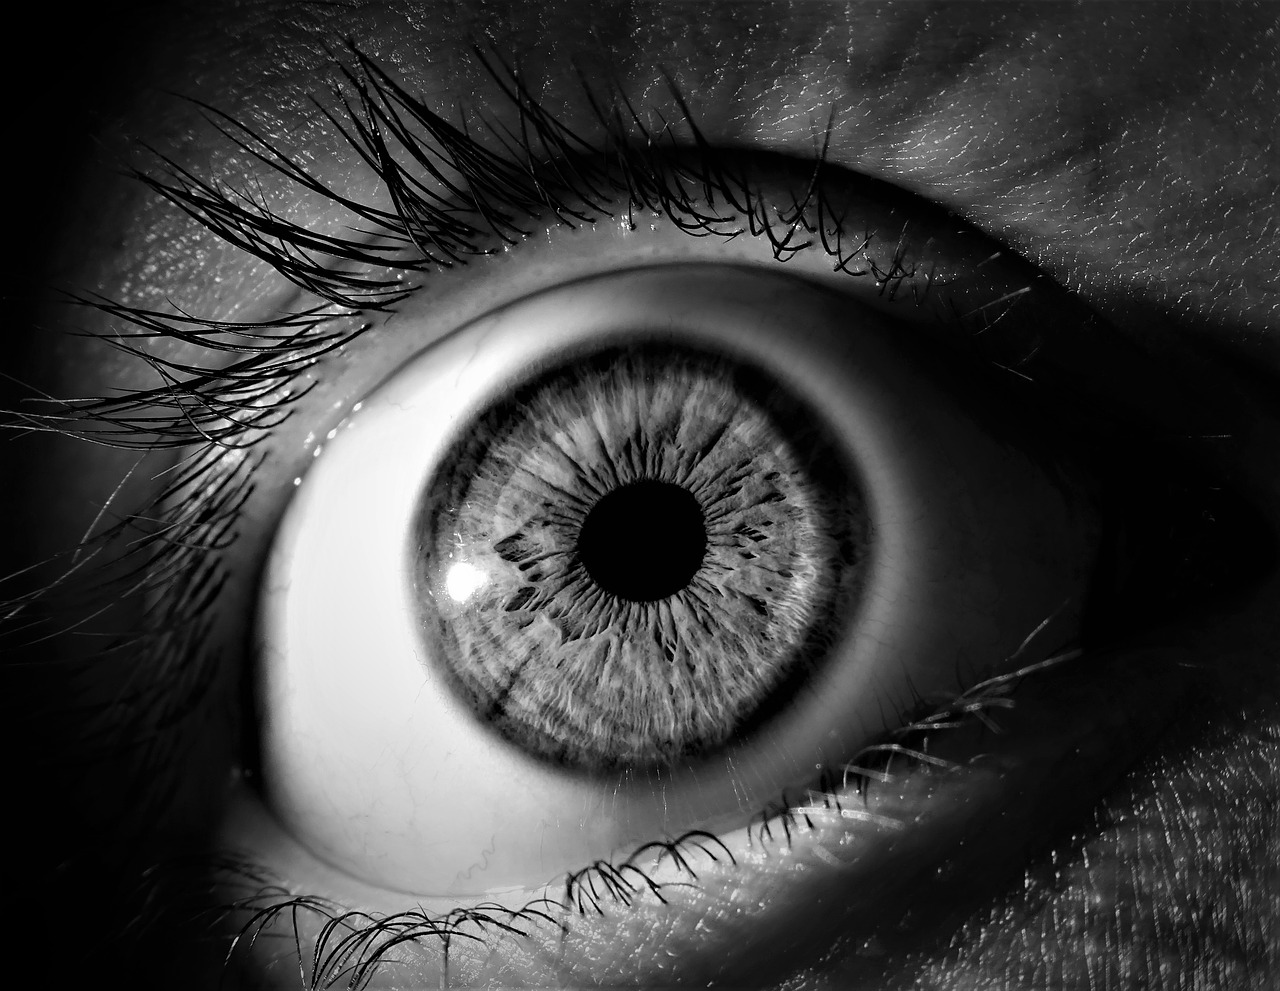 Dry Eyes: More Dangerous Than You'd Expect